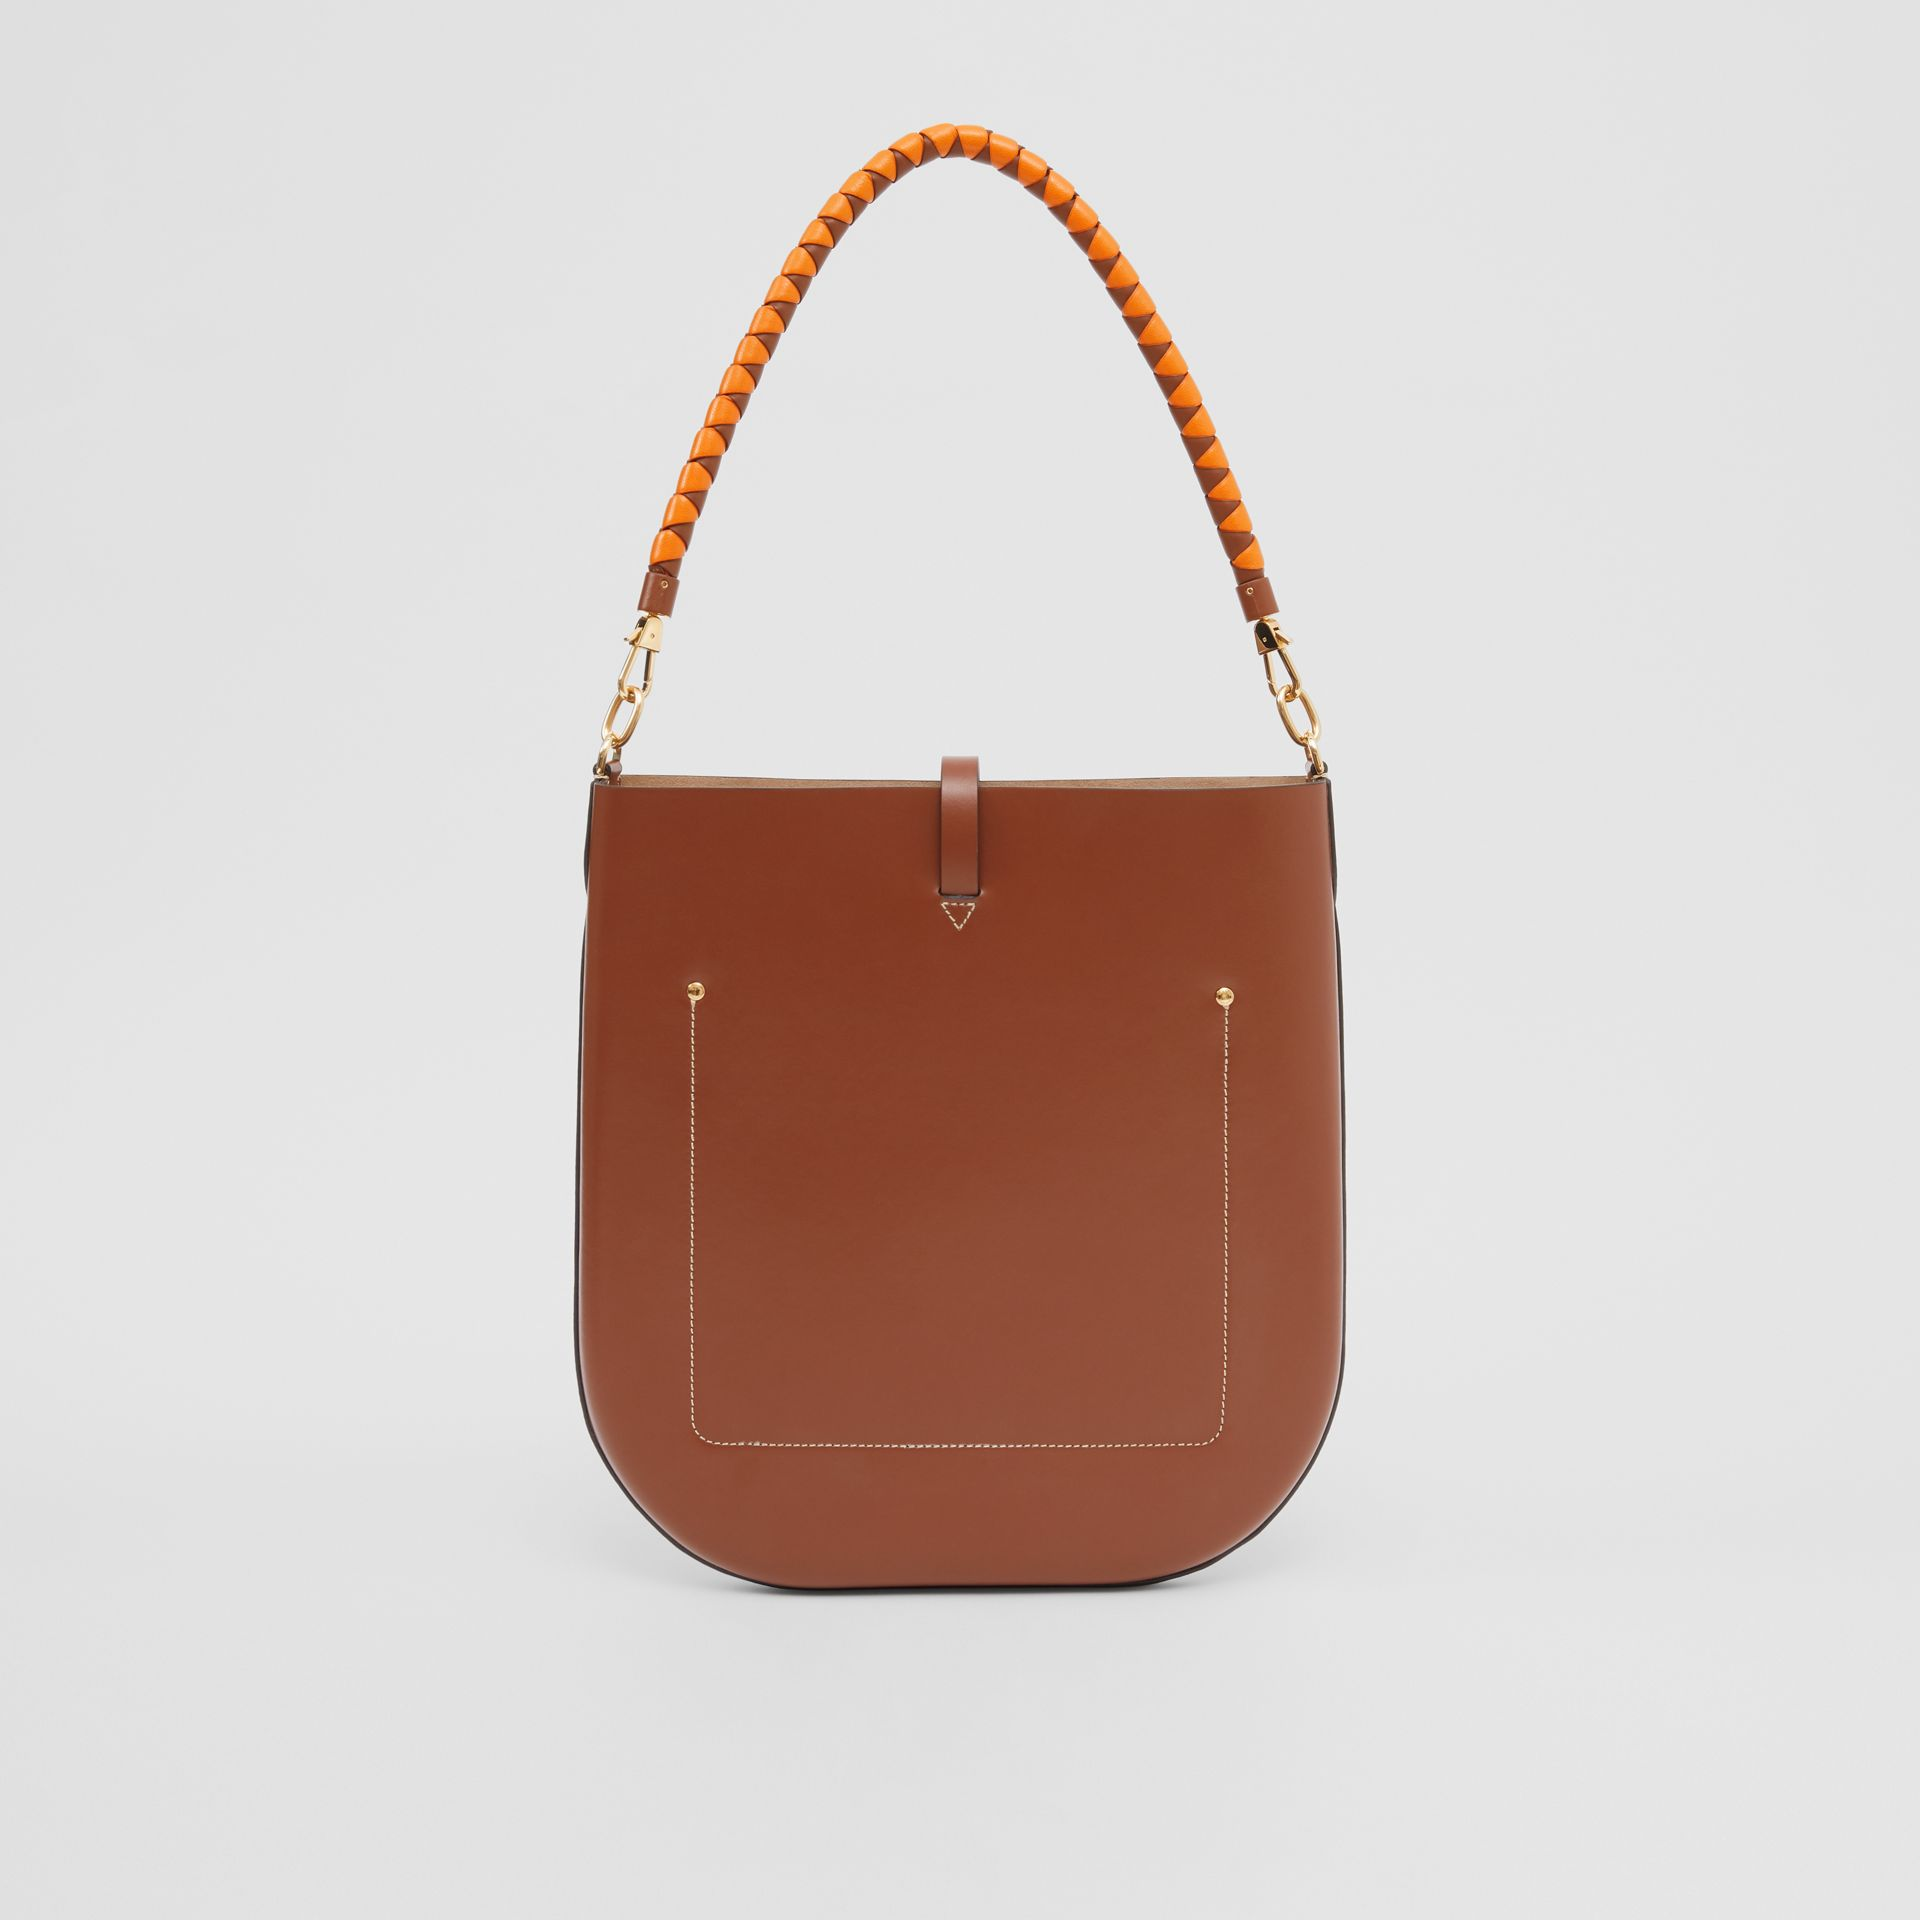 Leather Anne Bag in Tan - Women | Burberry Australia - gallery image 7